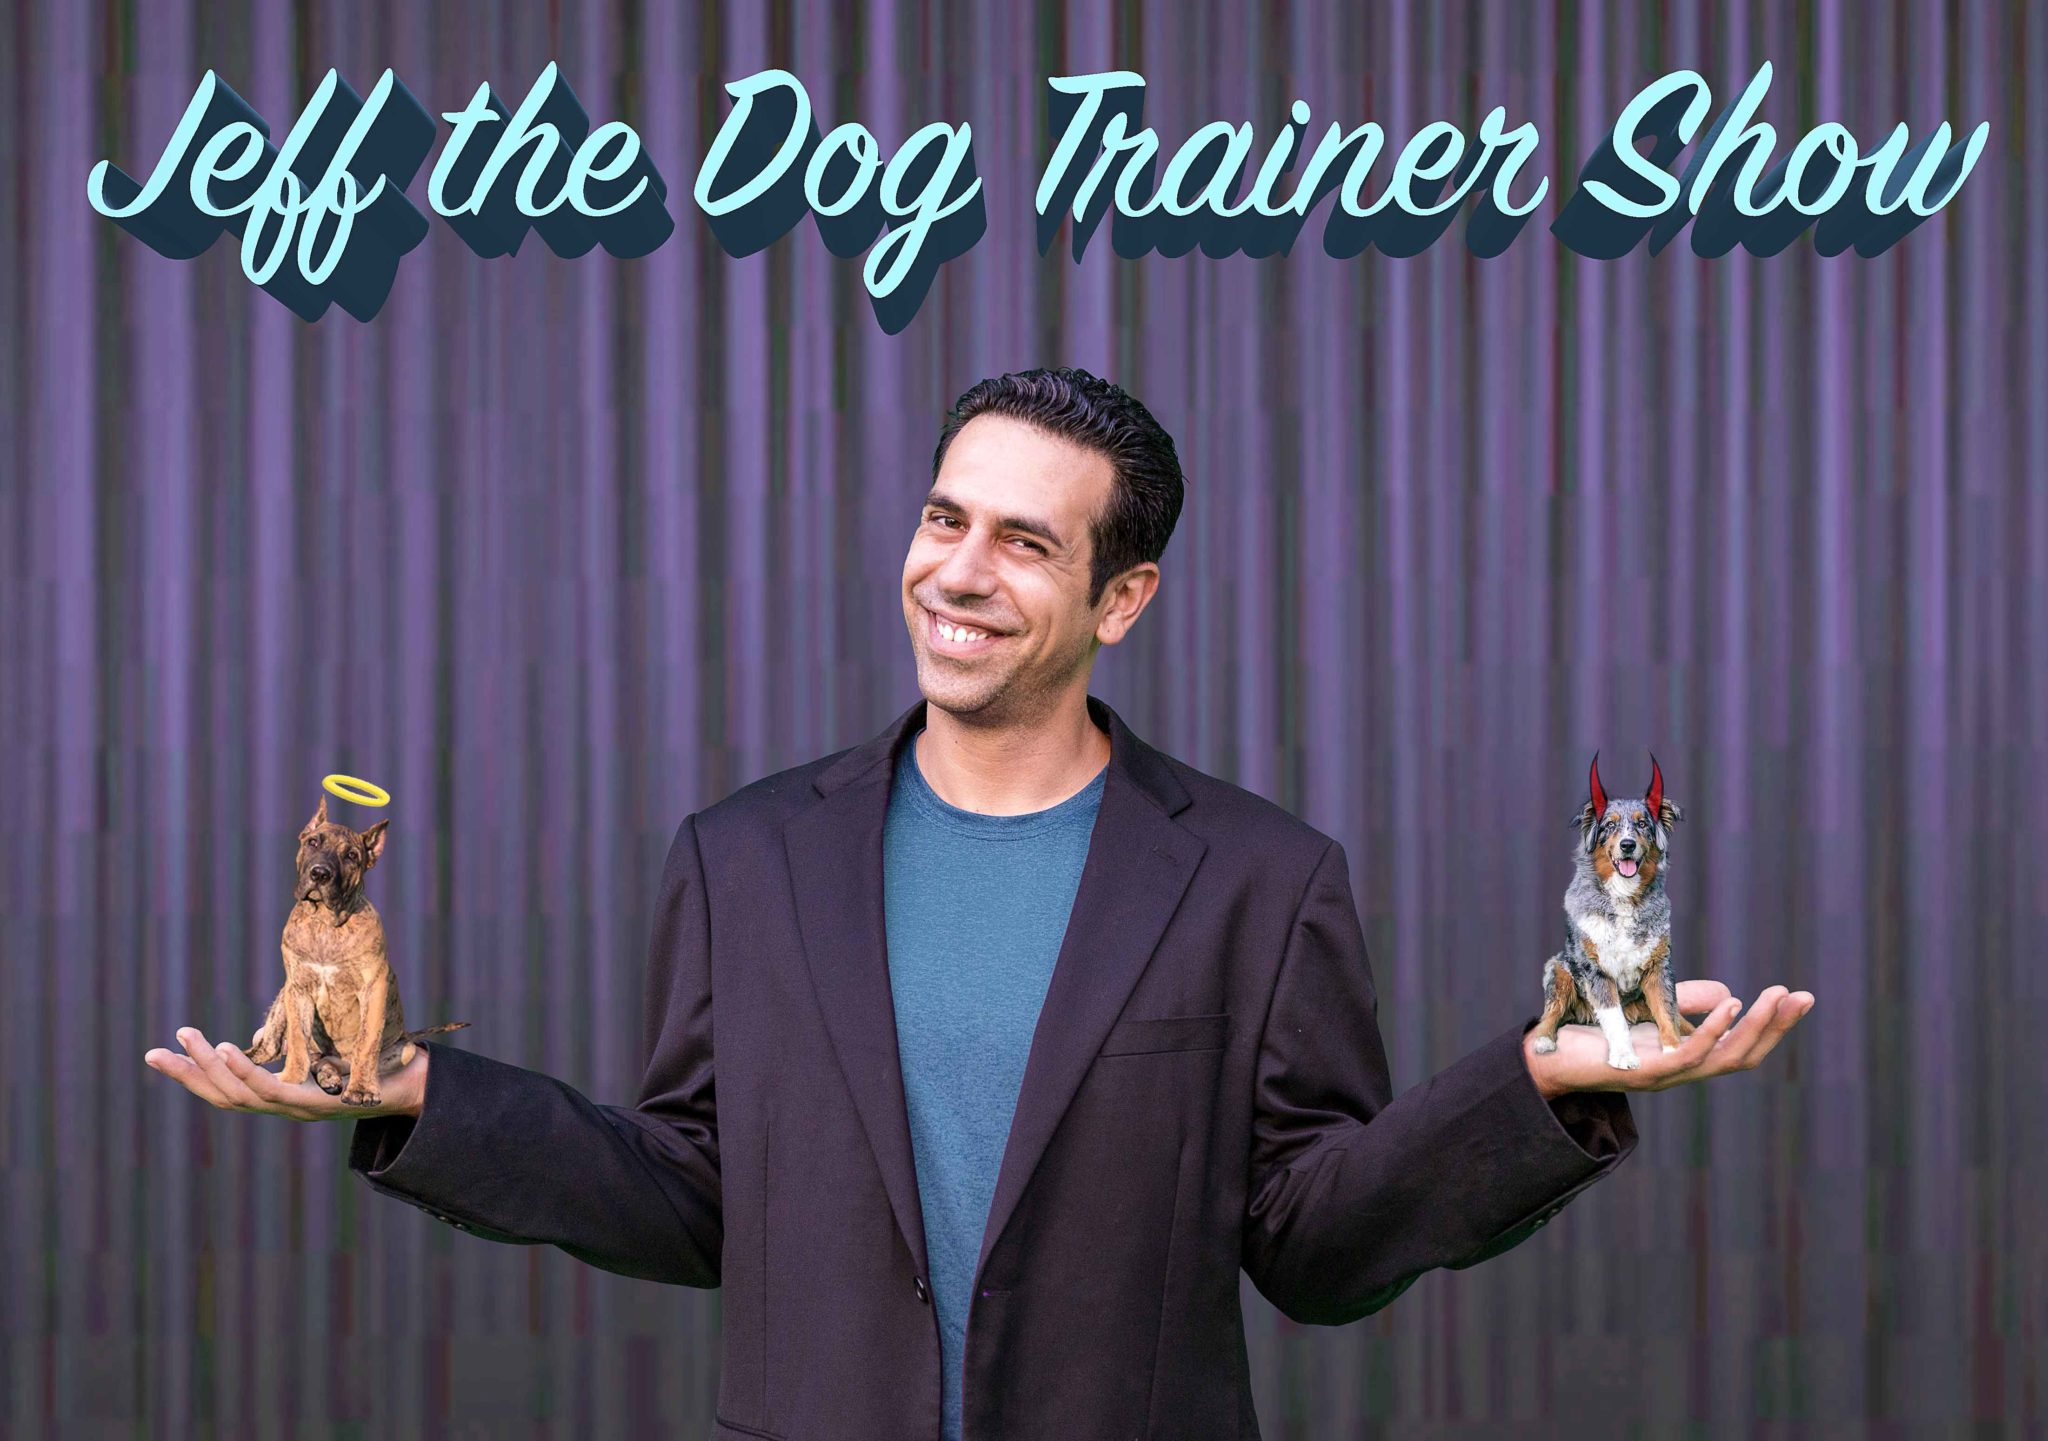 Jeff Feuerwerker AKA Jeff The Dog Trainer JTDT